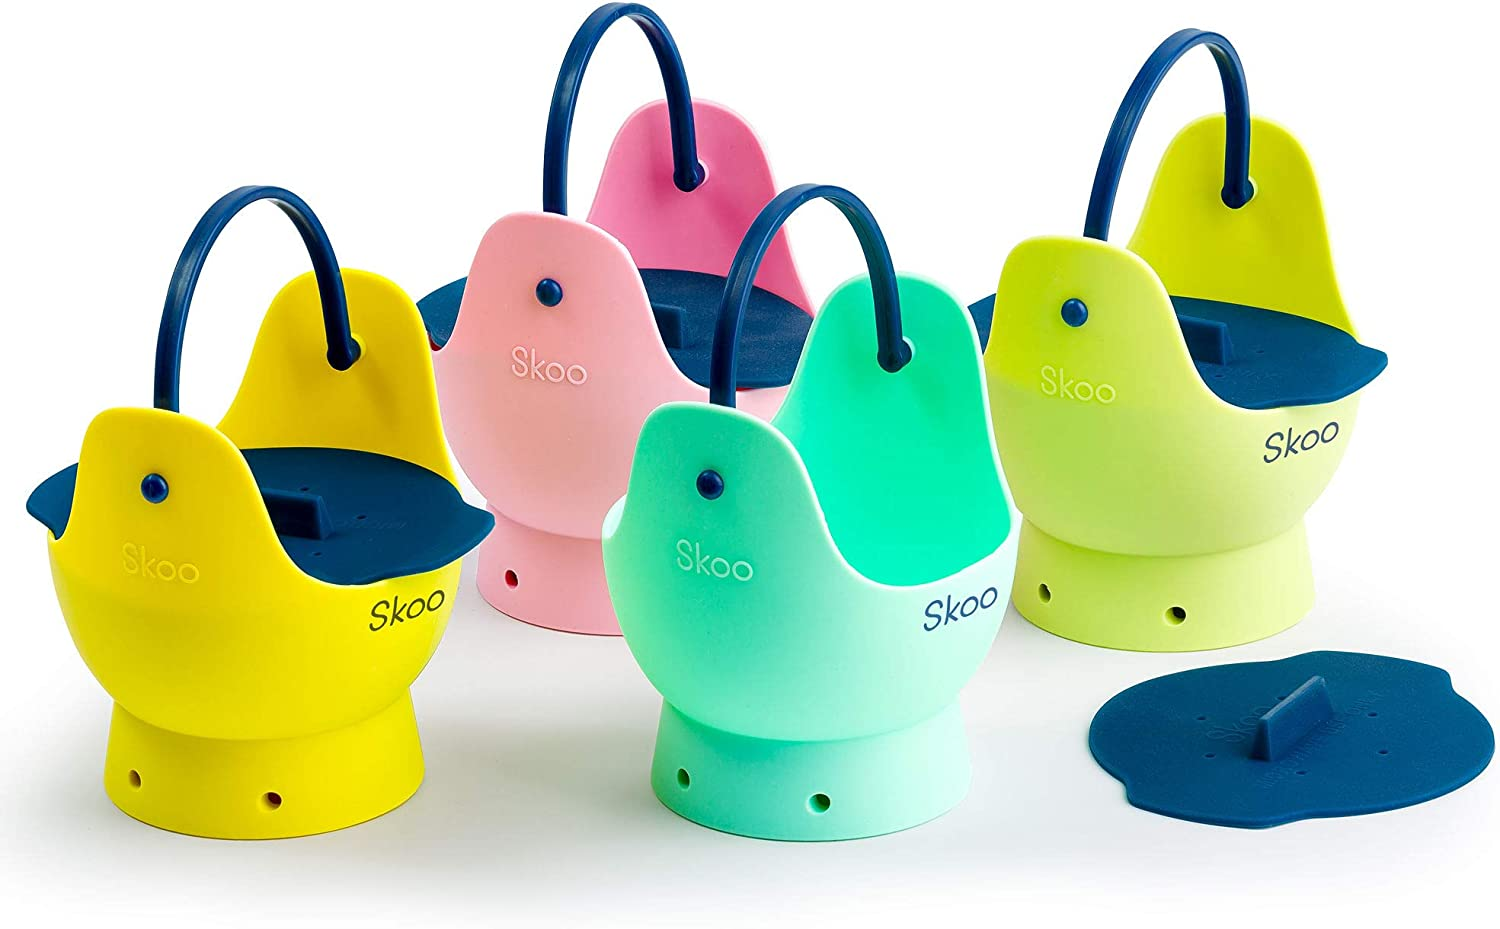 Egg Poacher - Skoo Silicone Egg Poaching Cups + Lids + Ebook - Egg Cooker Set - Perfect Poached Egg Maker - For Stove Top, Microwave and Instant Pot (Green, Red, Yellow, Turquoise, Dark Blue)